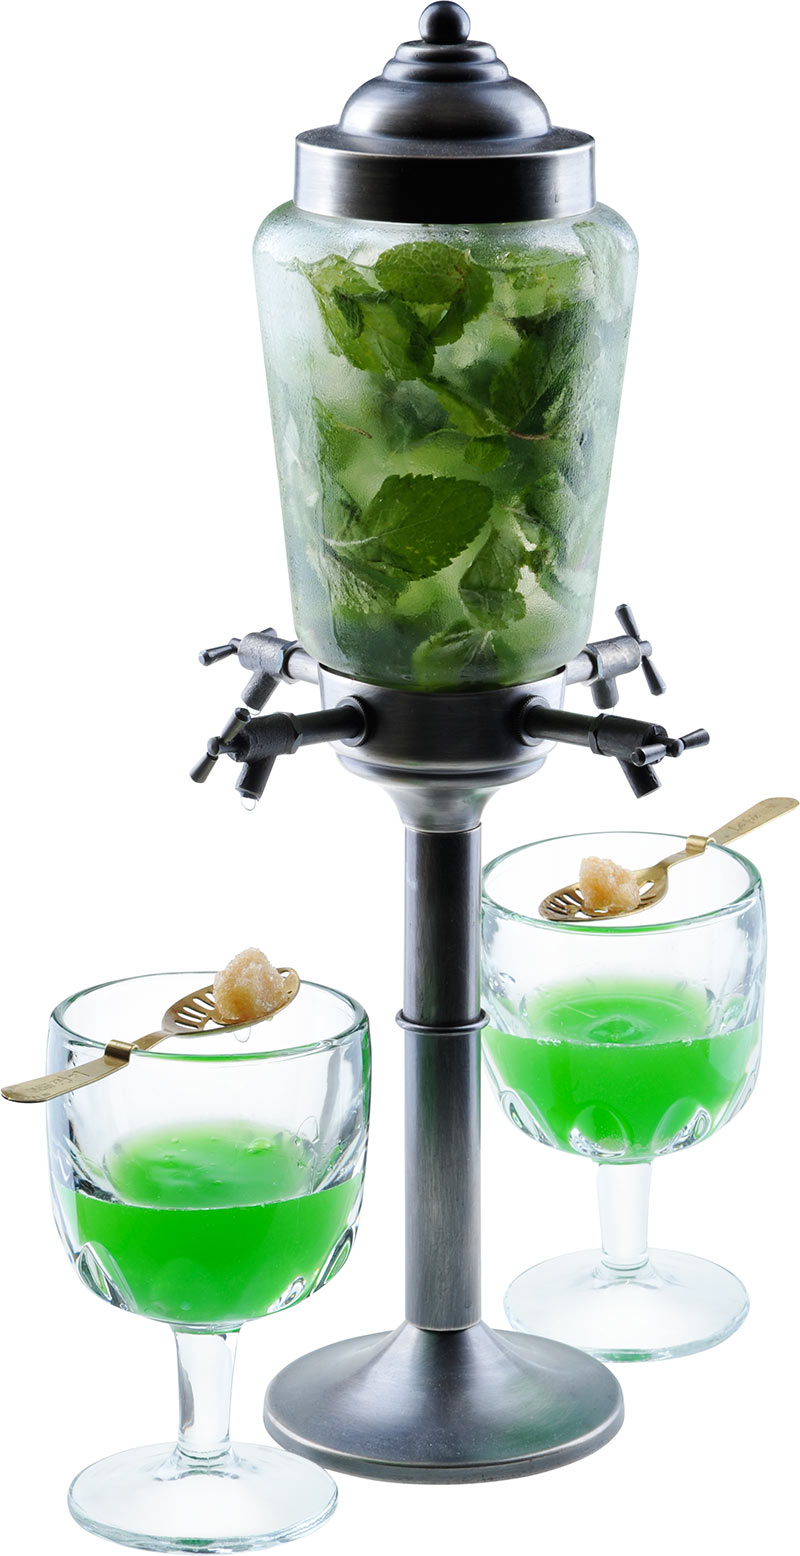 How to Make the Fountain with Absinthe